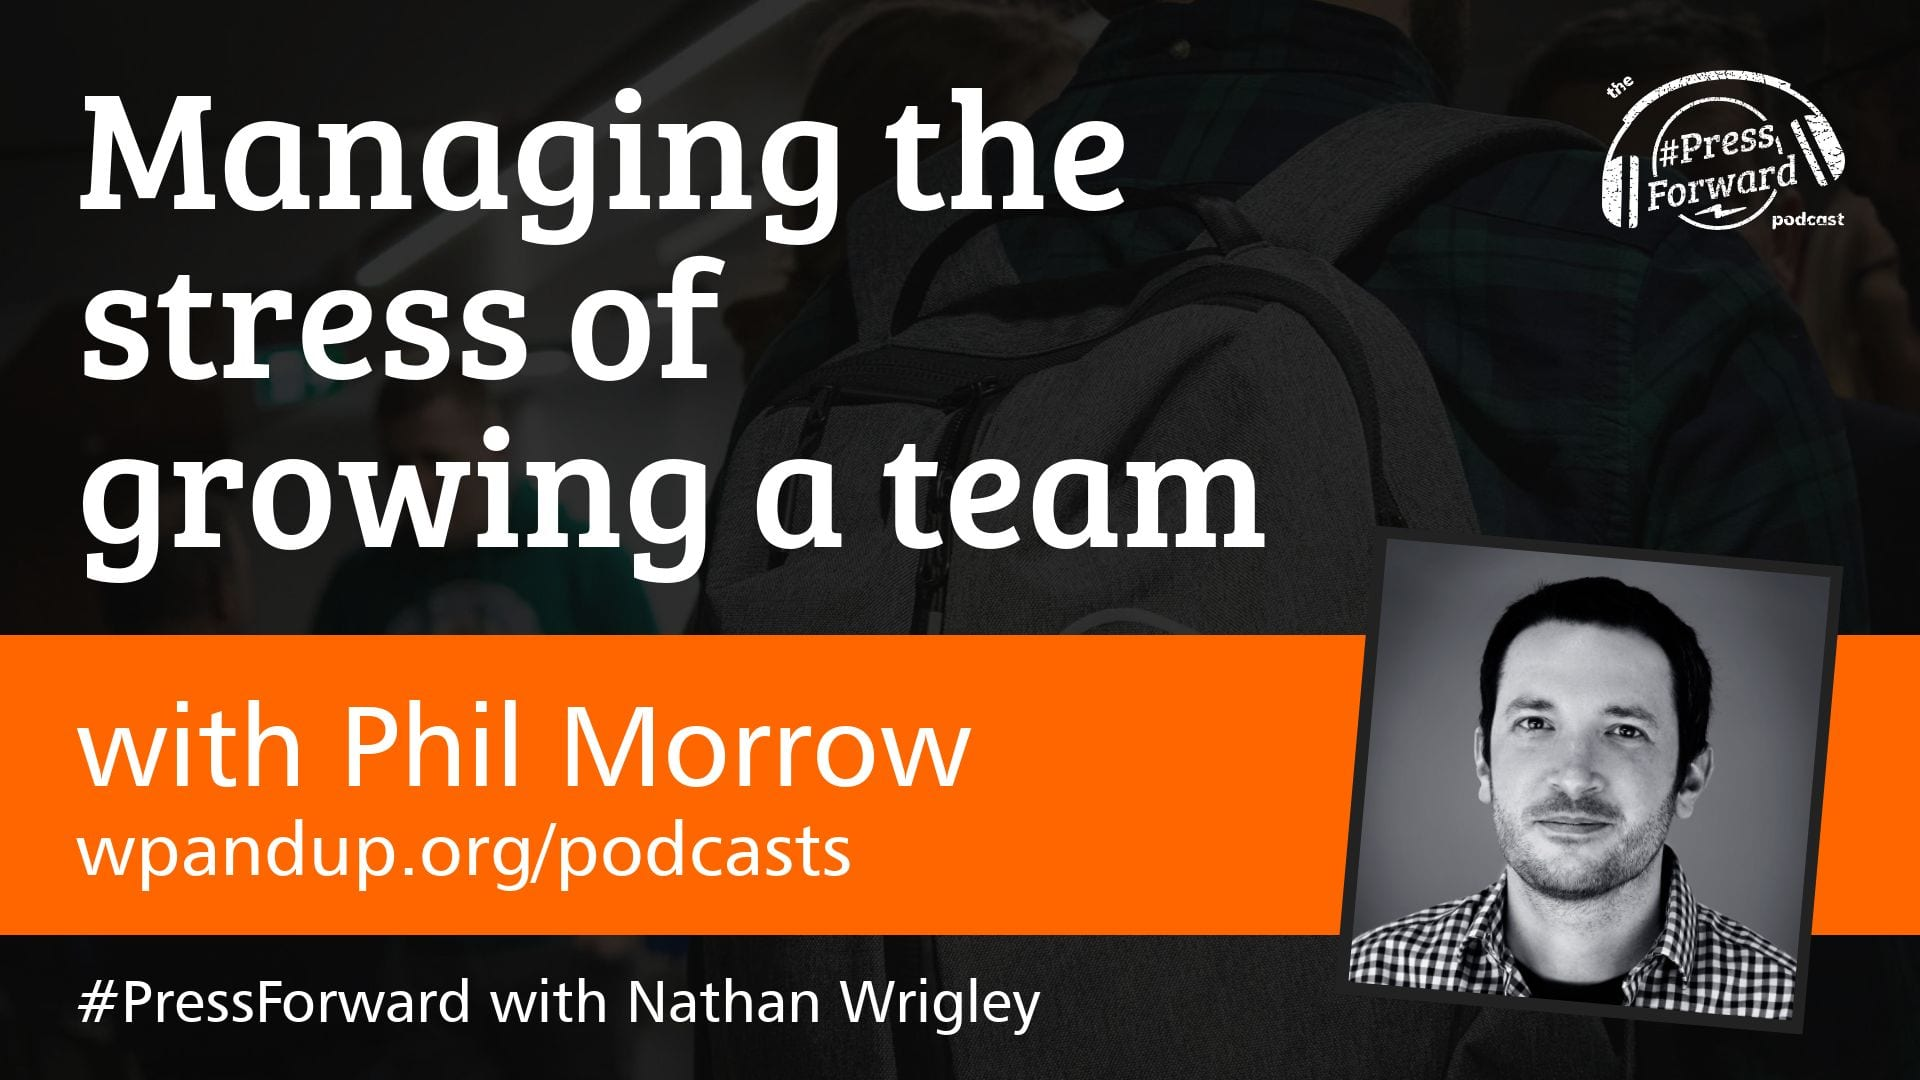 Managing the stress of growing a team - #013